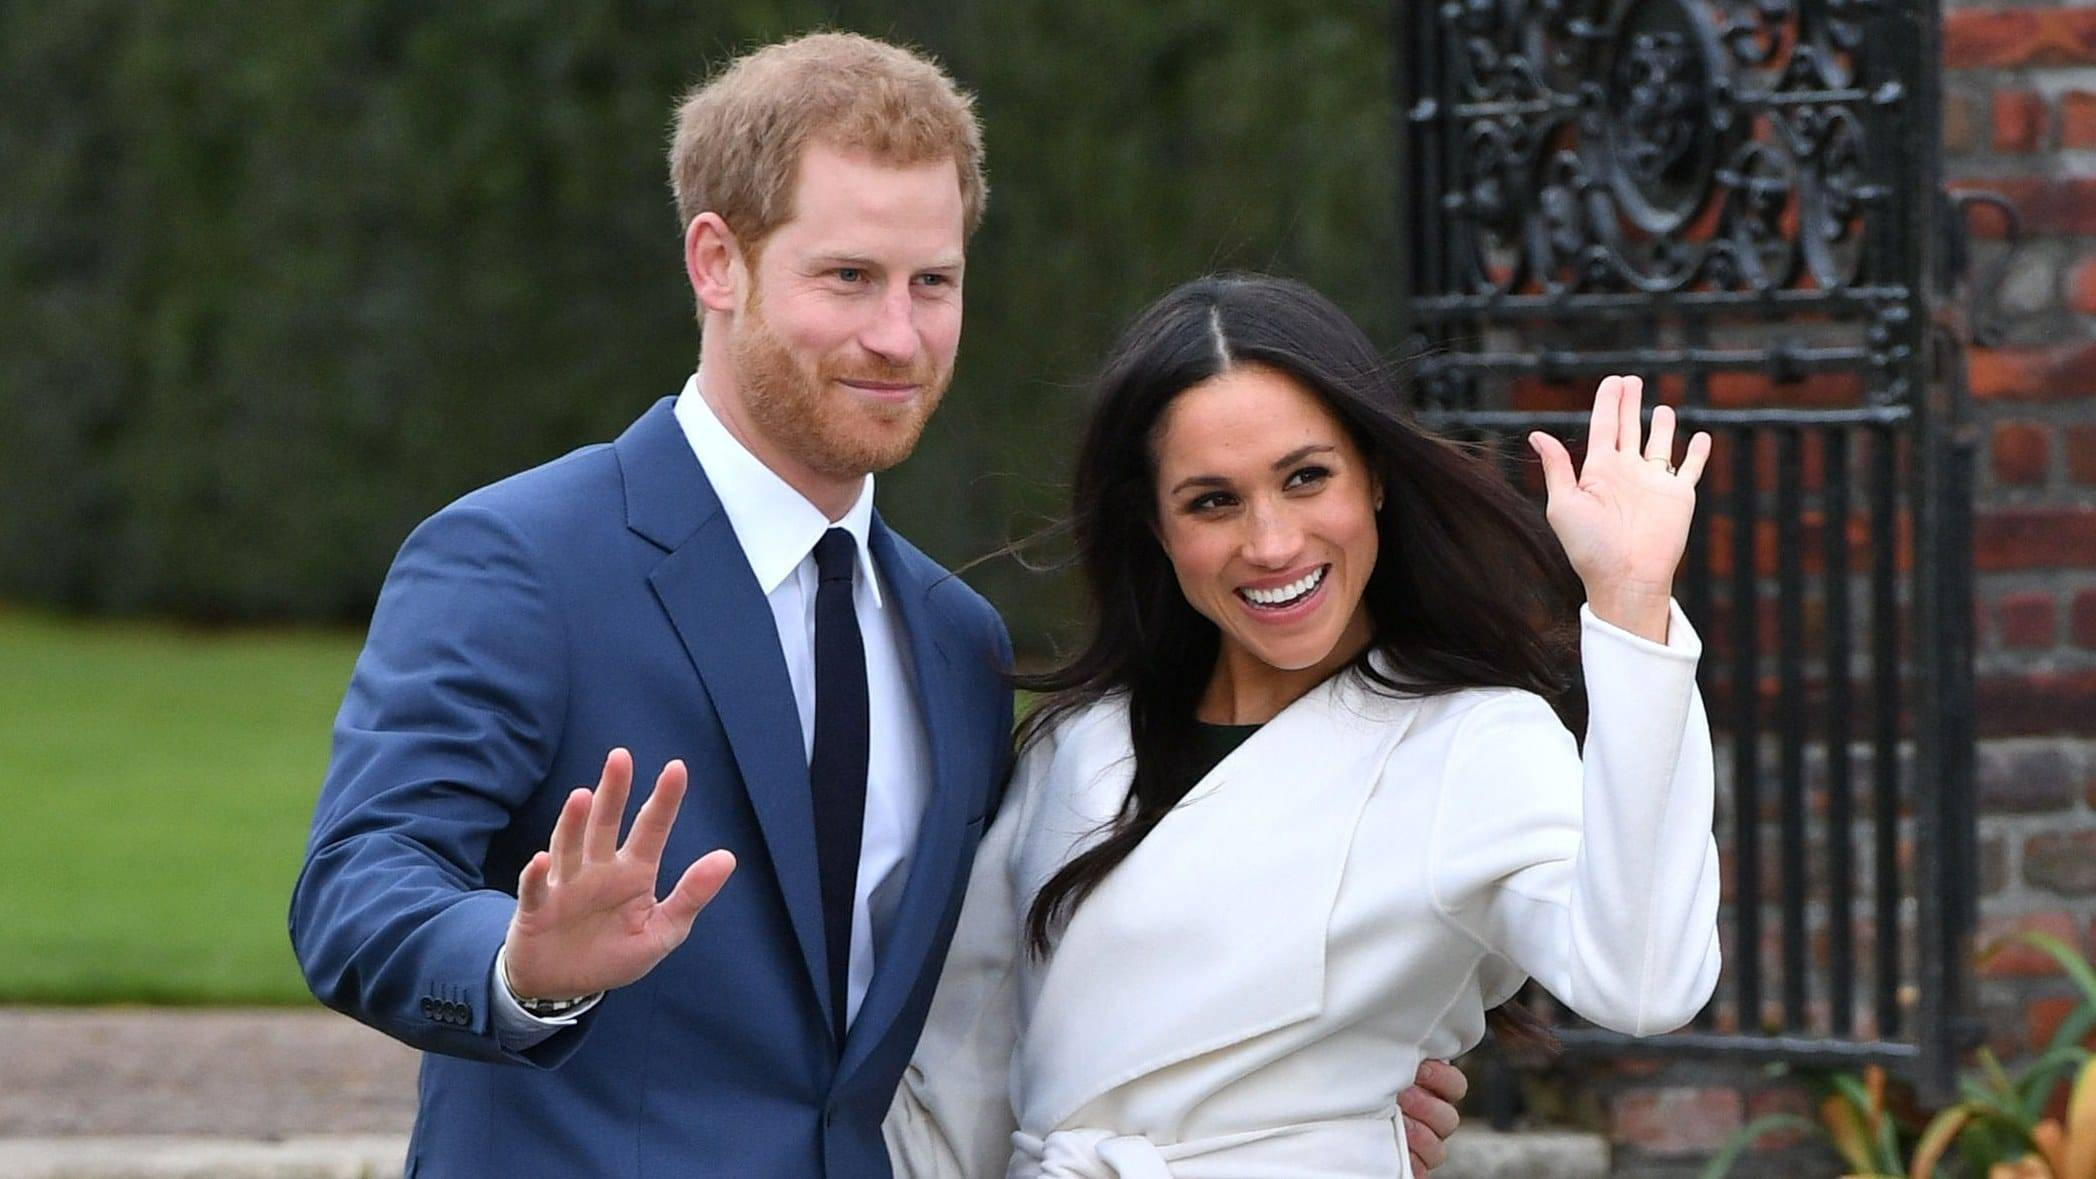 Important Question: Where Will Meghan Markle and Prince Harrys Baby Be in Line to the Throne Important Question: Where Will Meghan Markle and Prince Harrys Baby Be in Line to the Throne new images